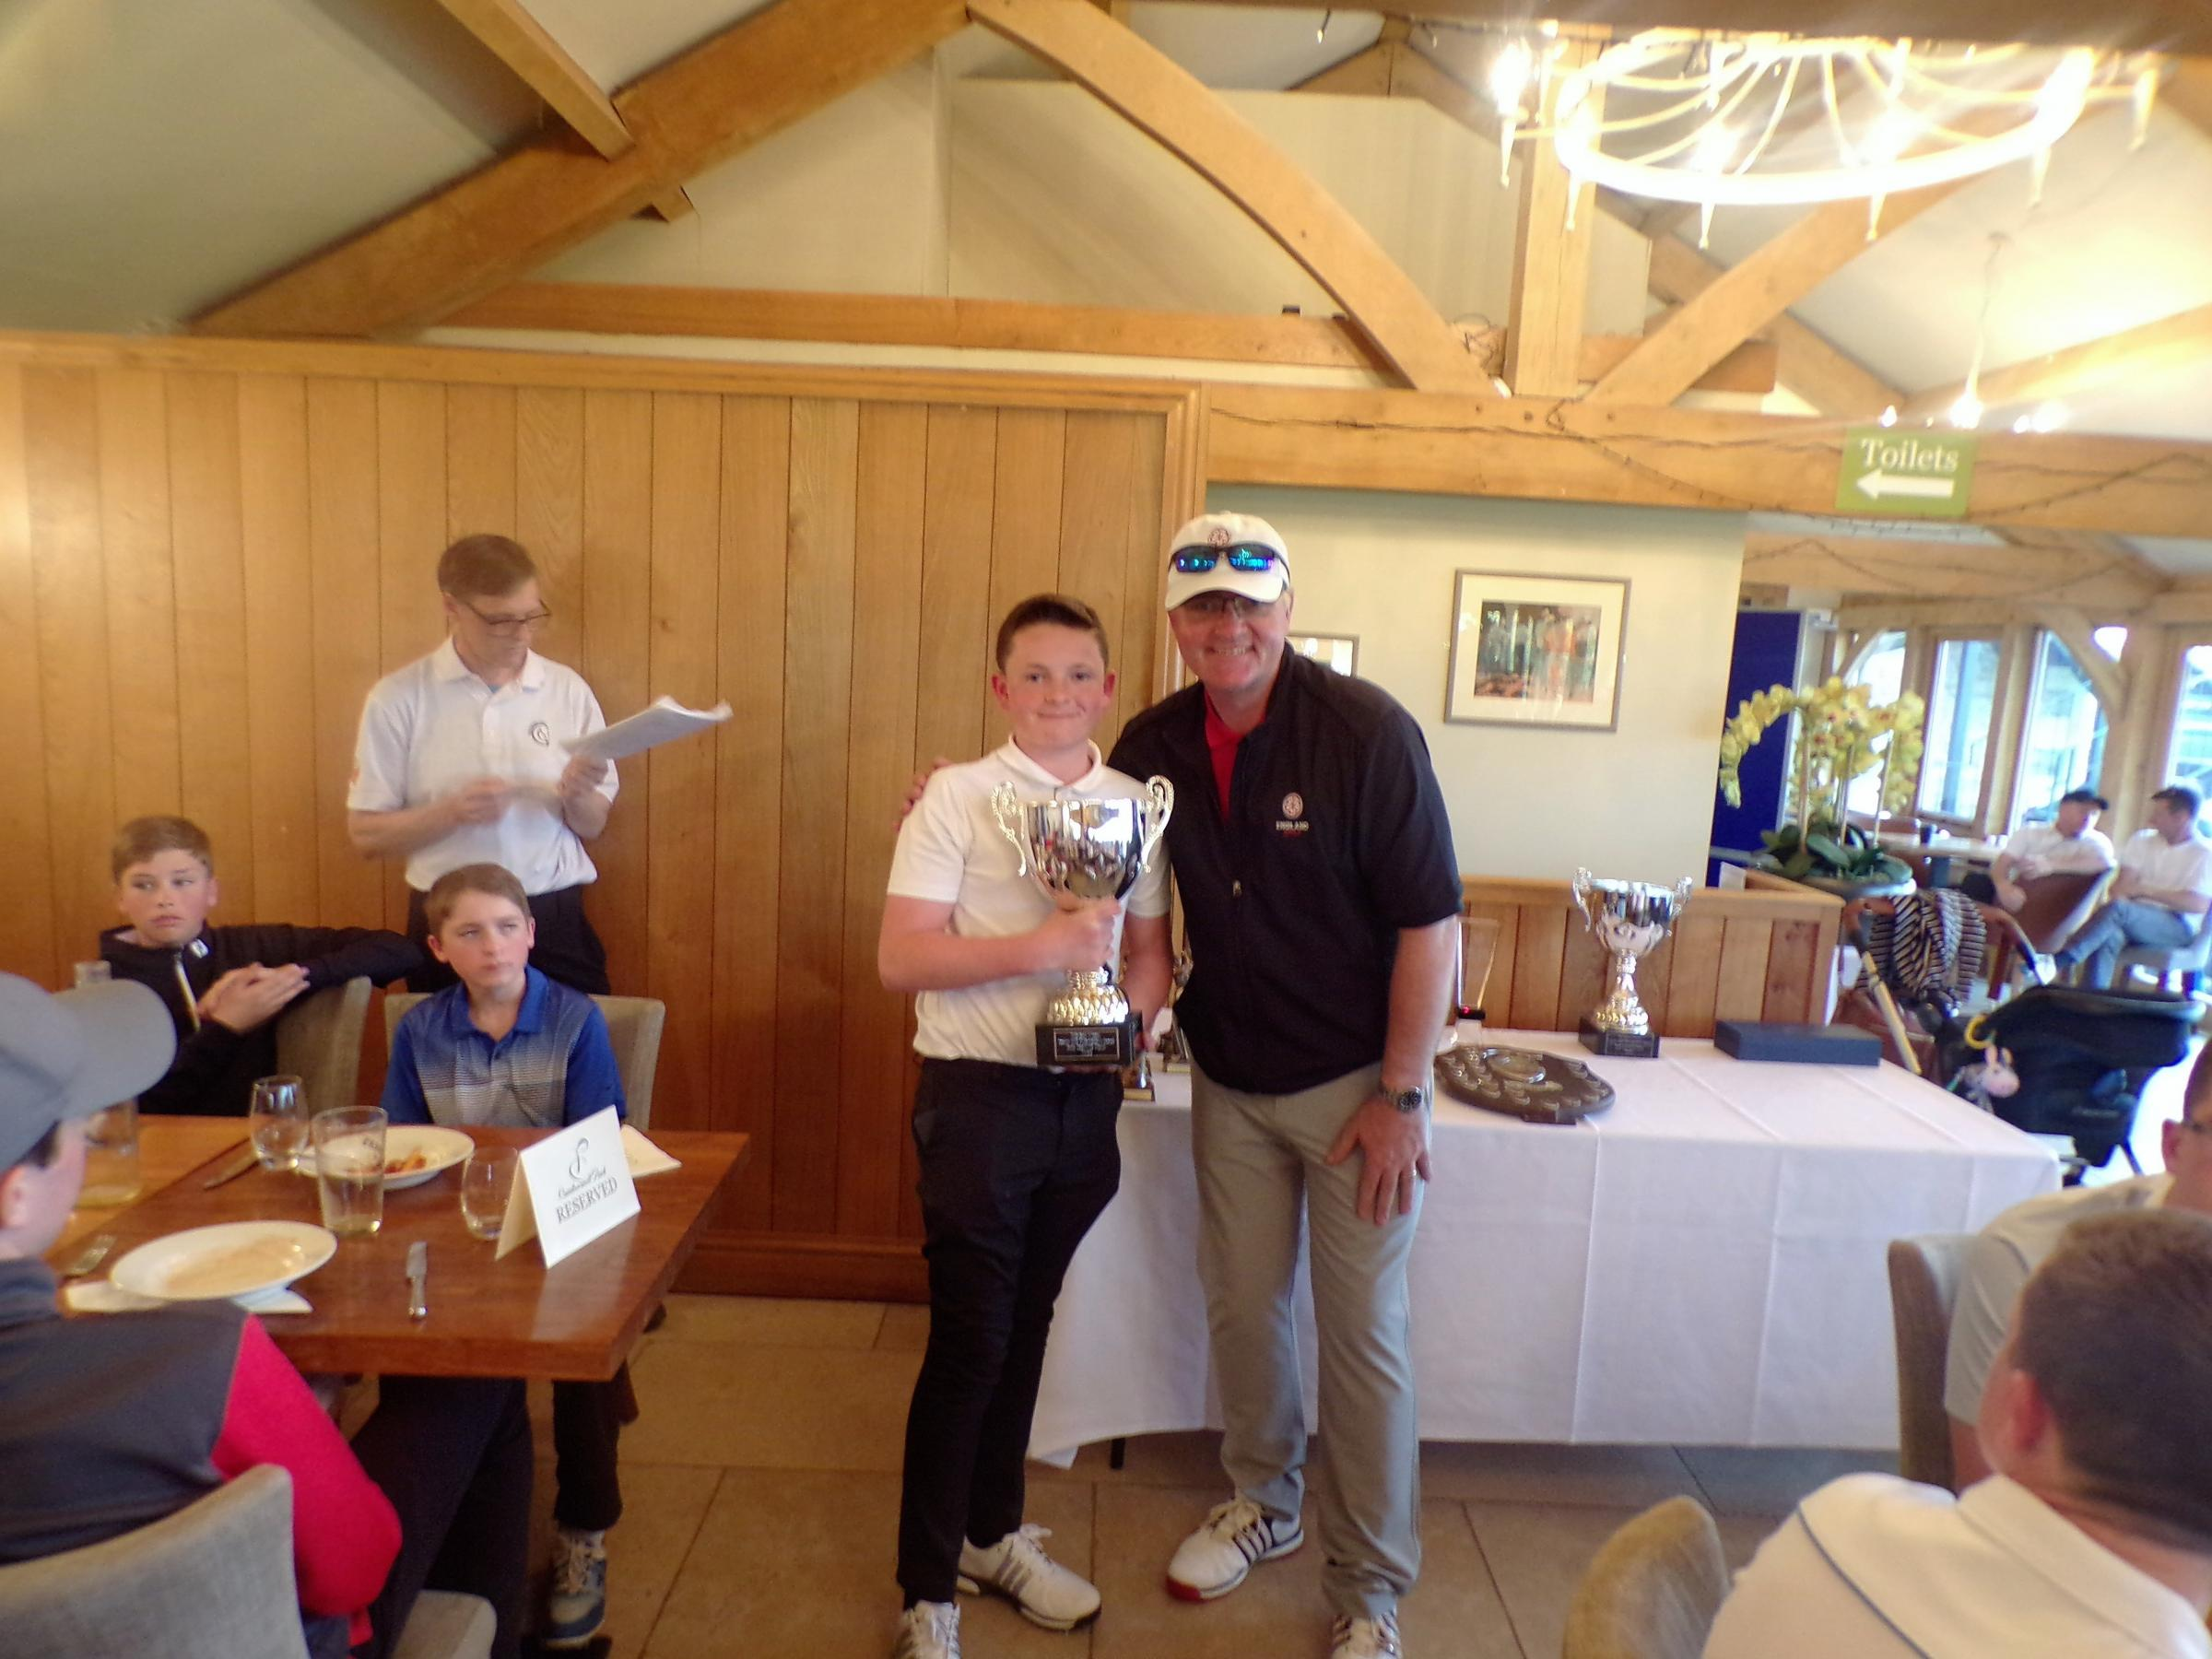 Joe Barker was the most improved player in the Wiltshire Junior Golf performance squad